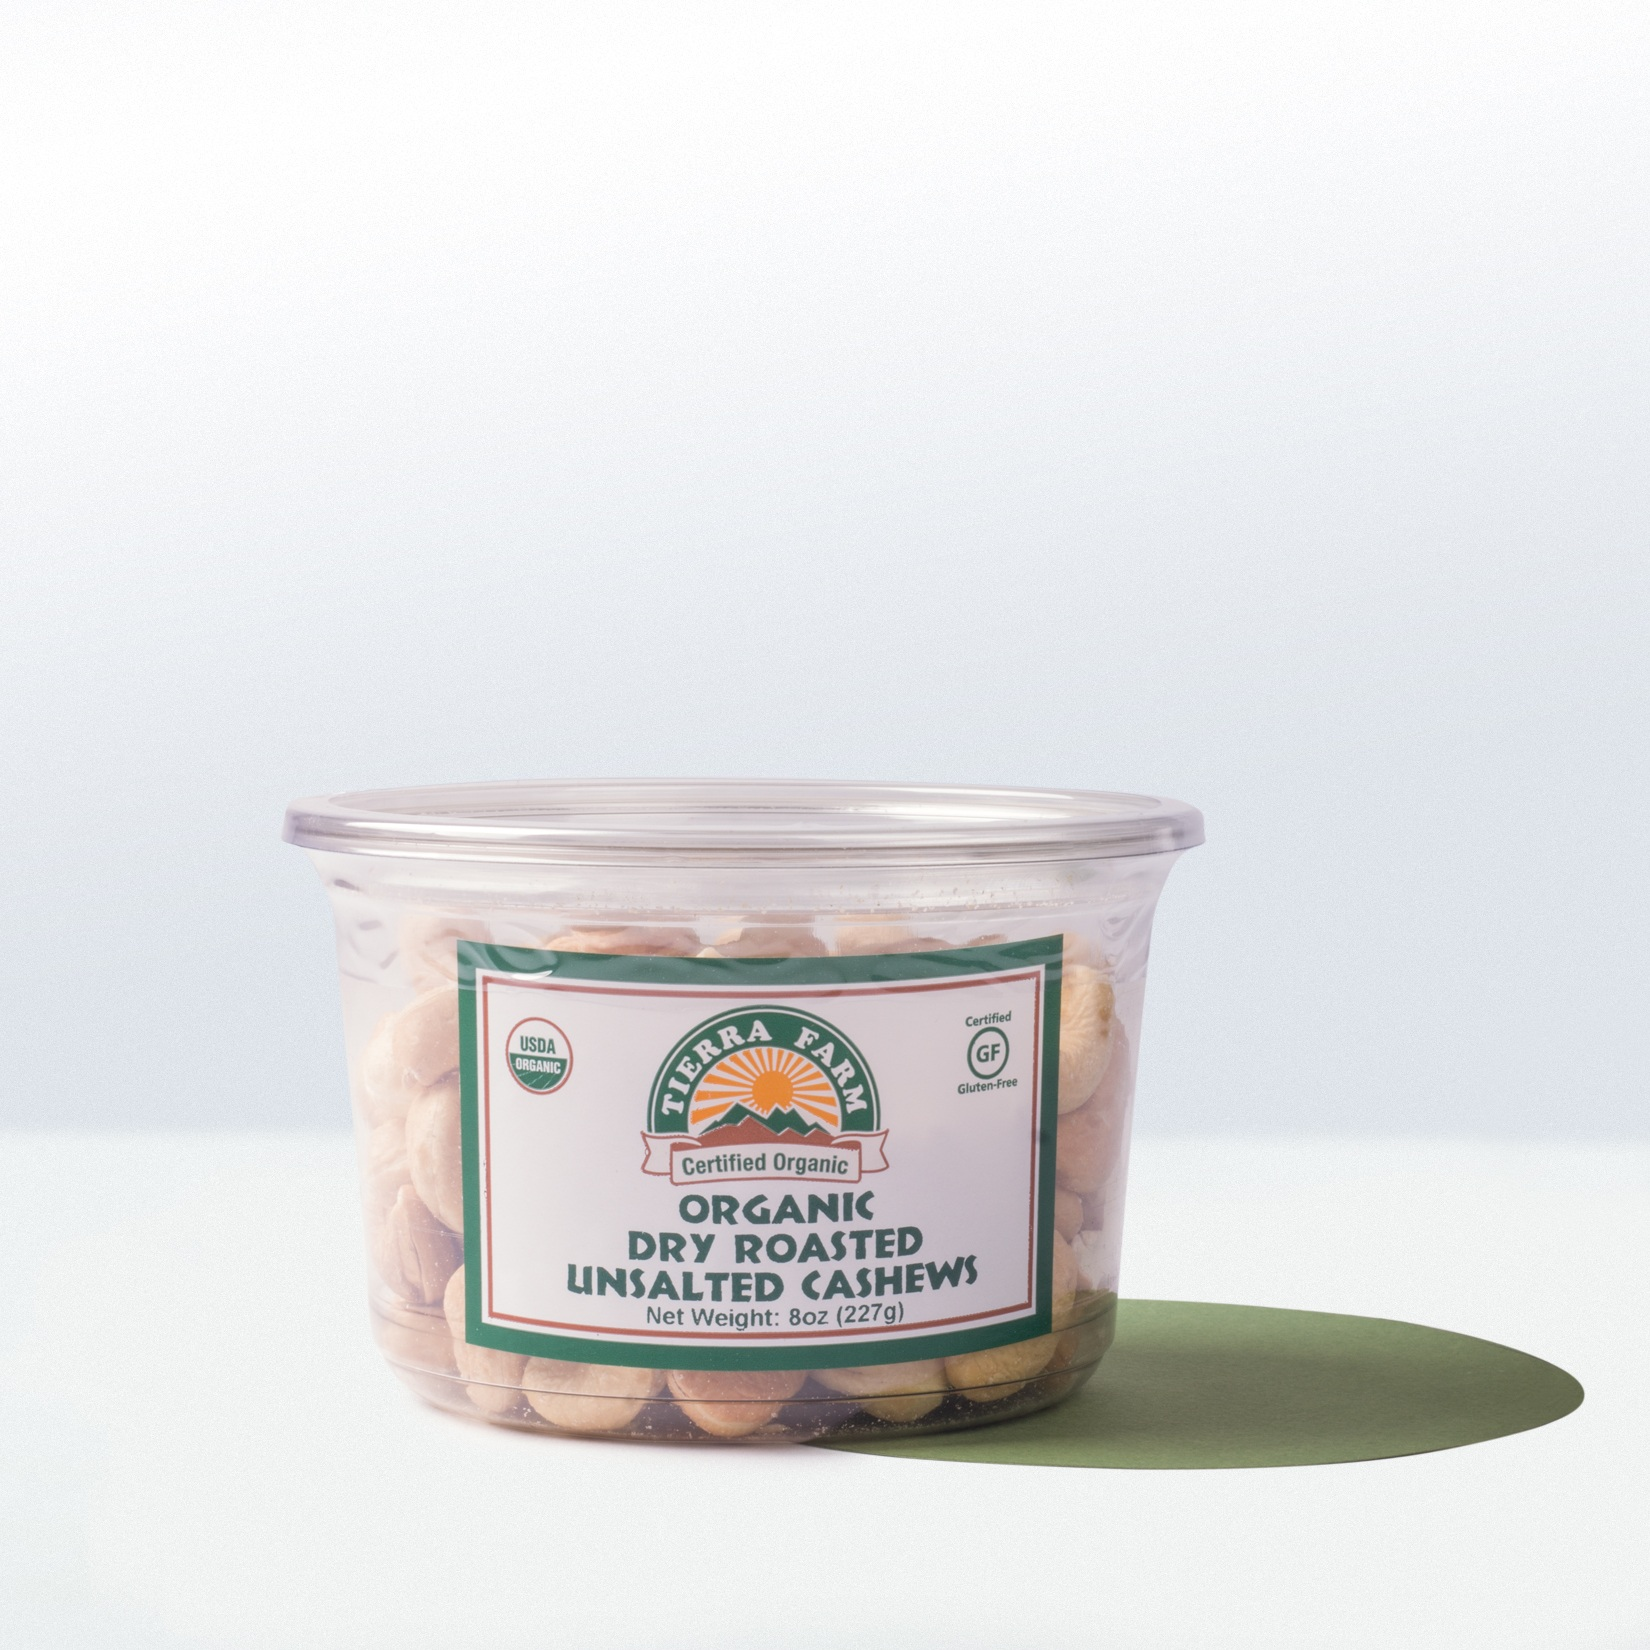 Tierra Farm-Organic Dry RoastedUnsalted Cashews